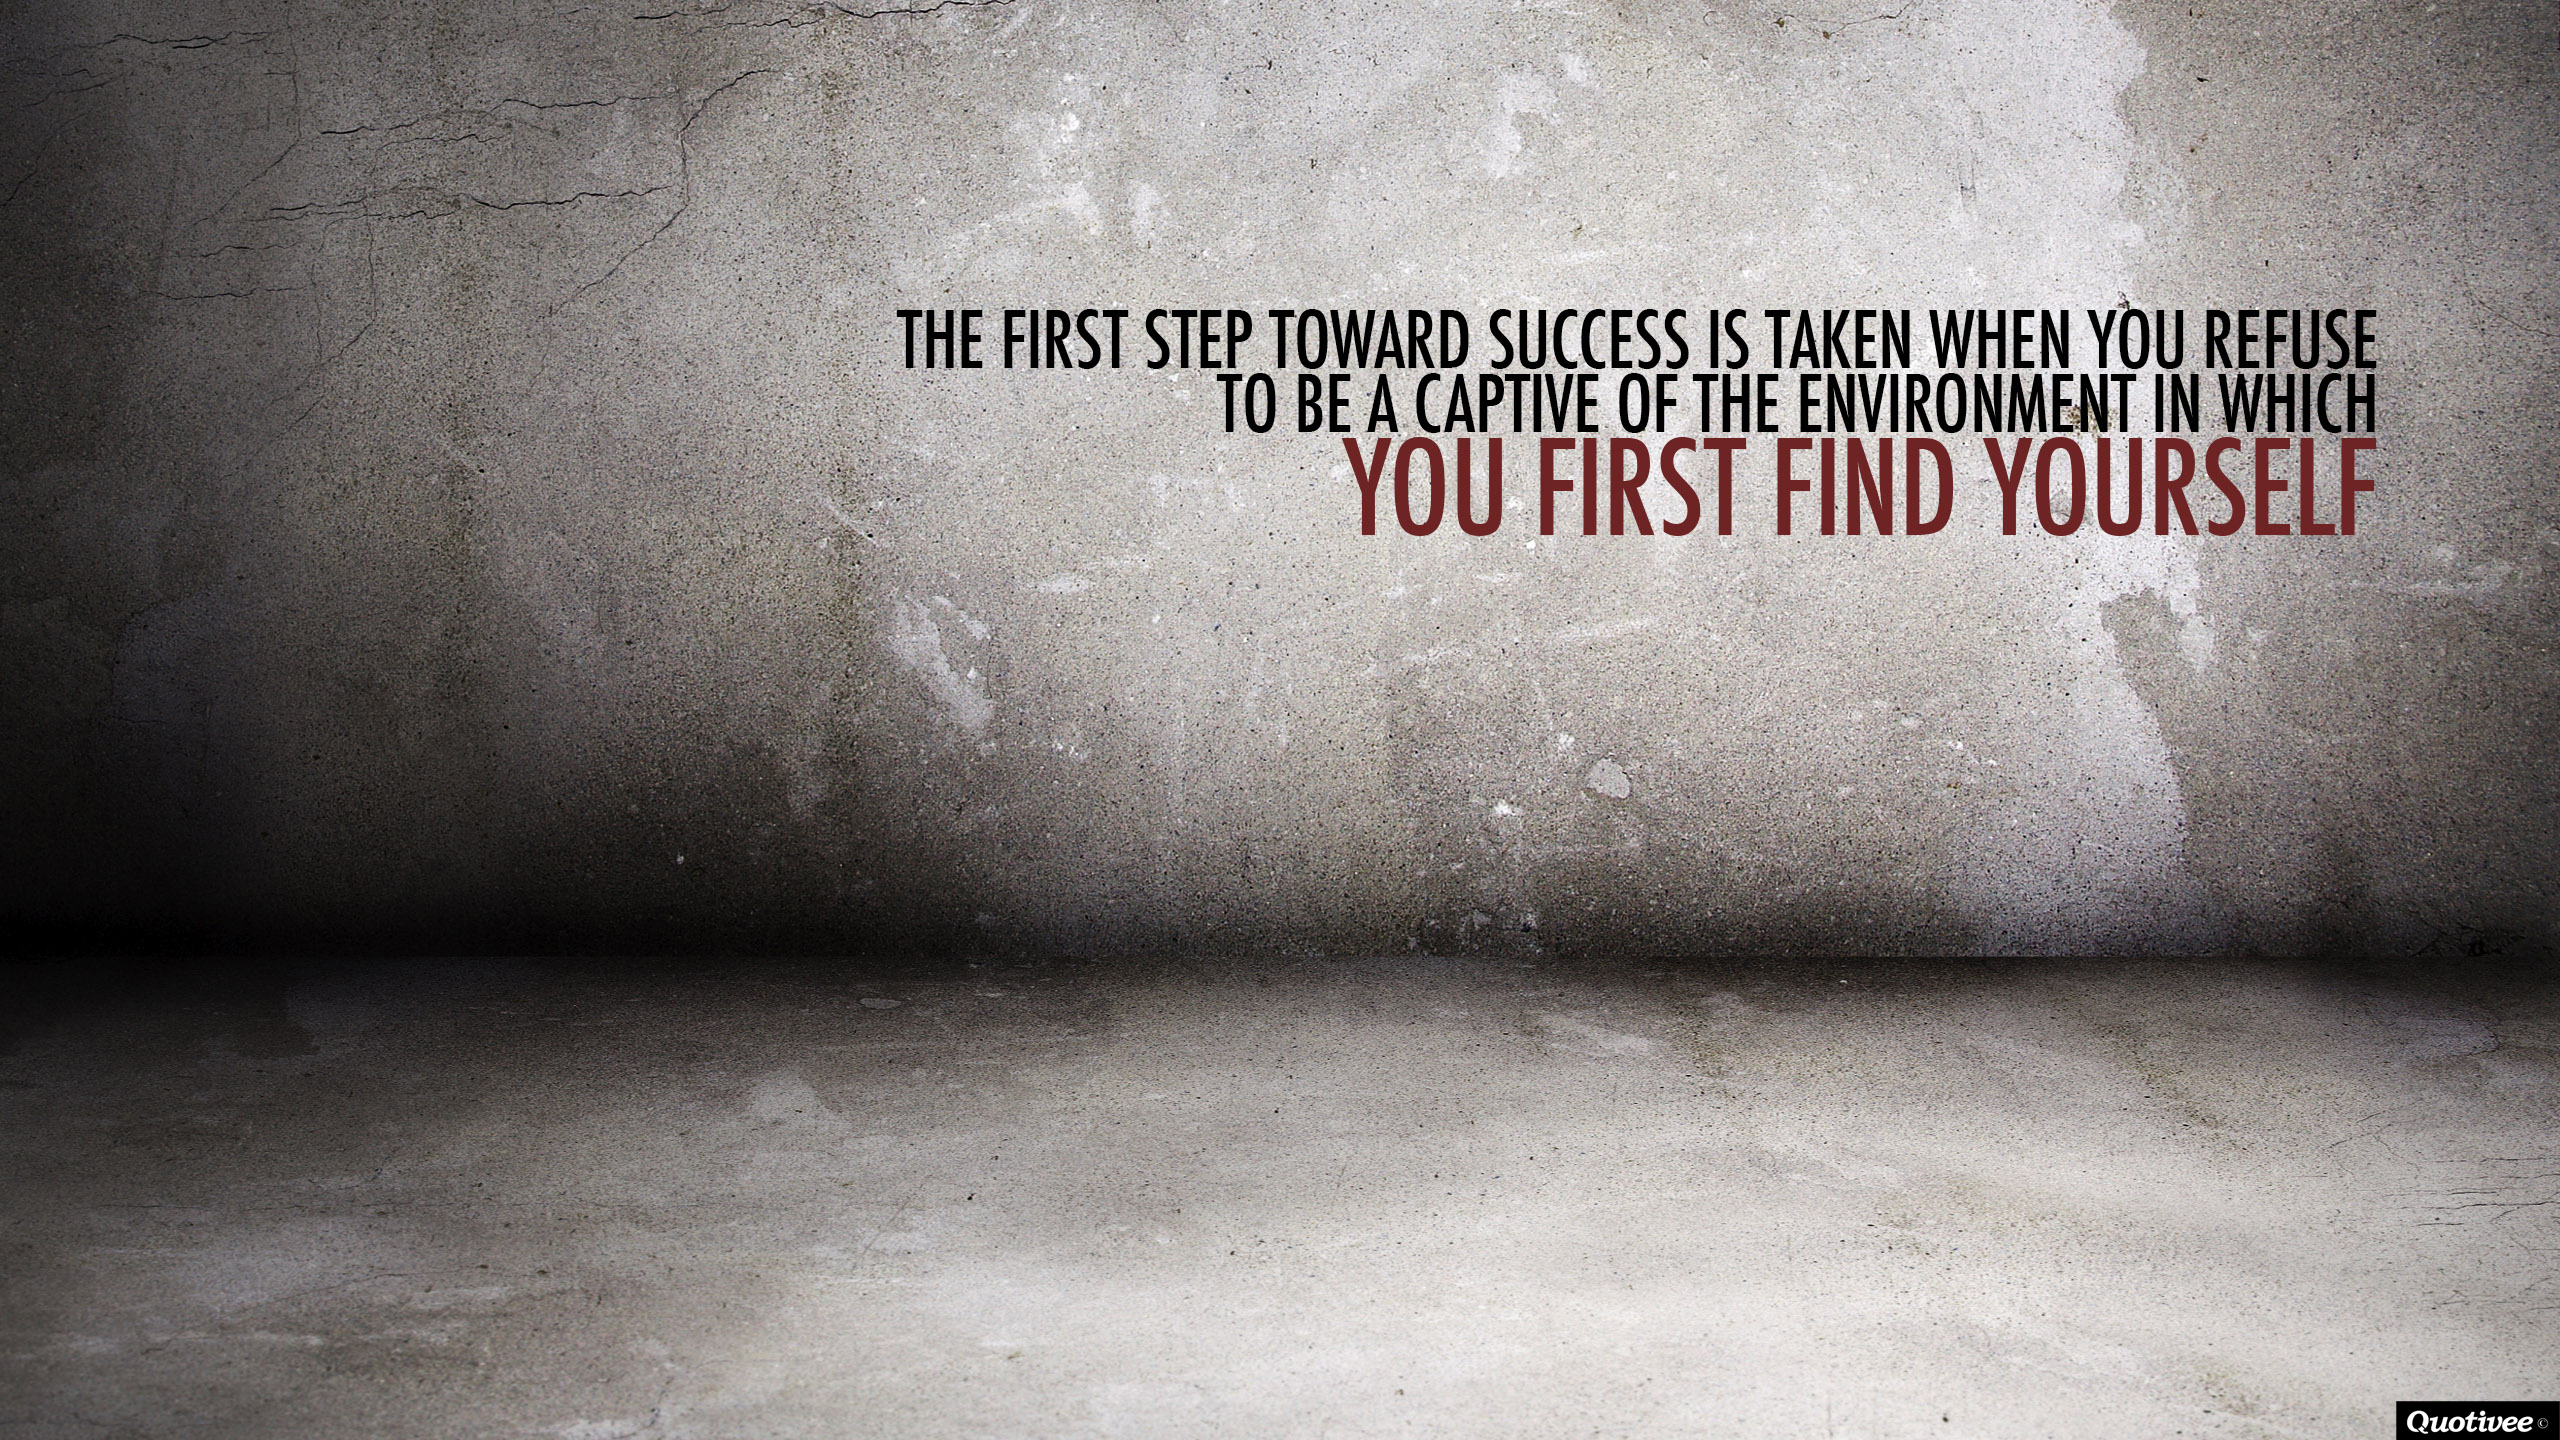 Harvey Specter Quotes Hd Wallpaper The First Step Toward Success Inspirational Quotes